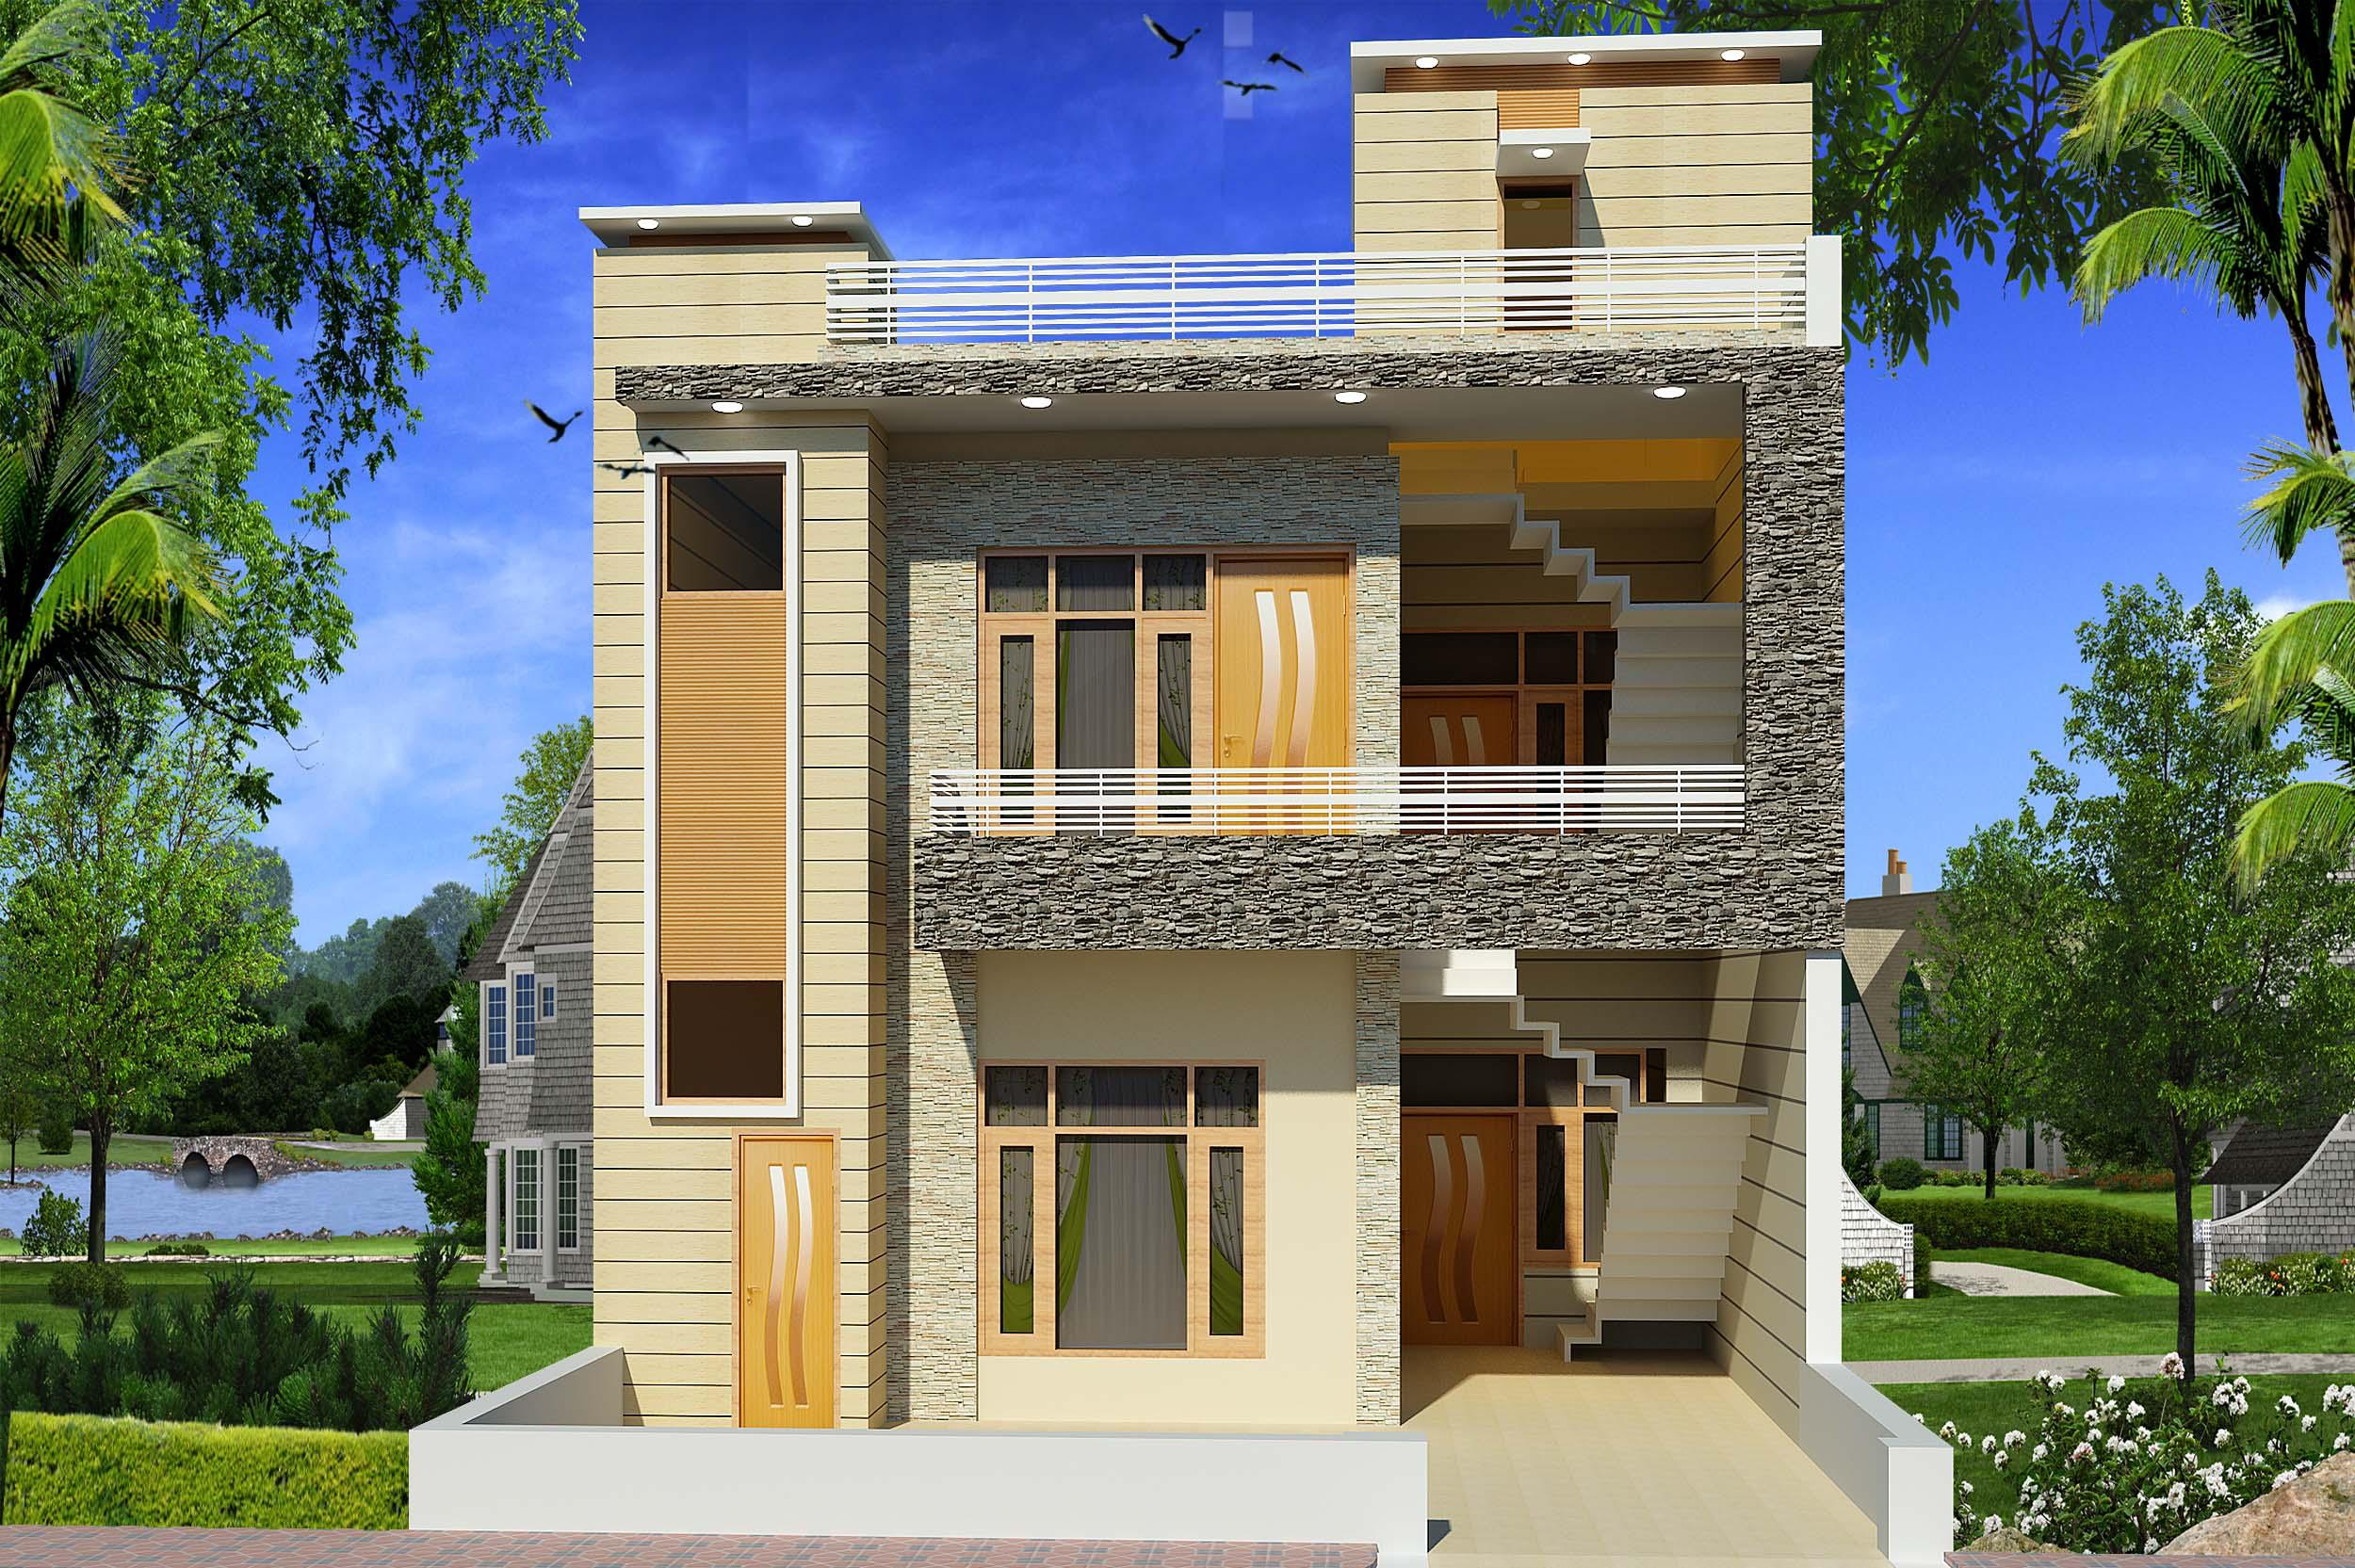 Modern house elevation gharexpert - Latest beautiful house design ...